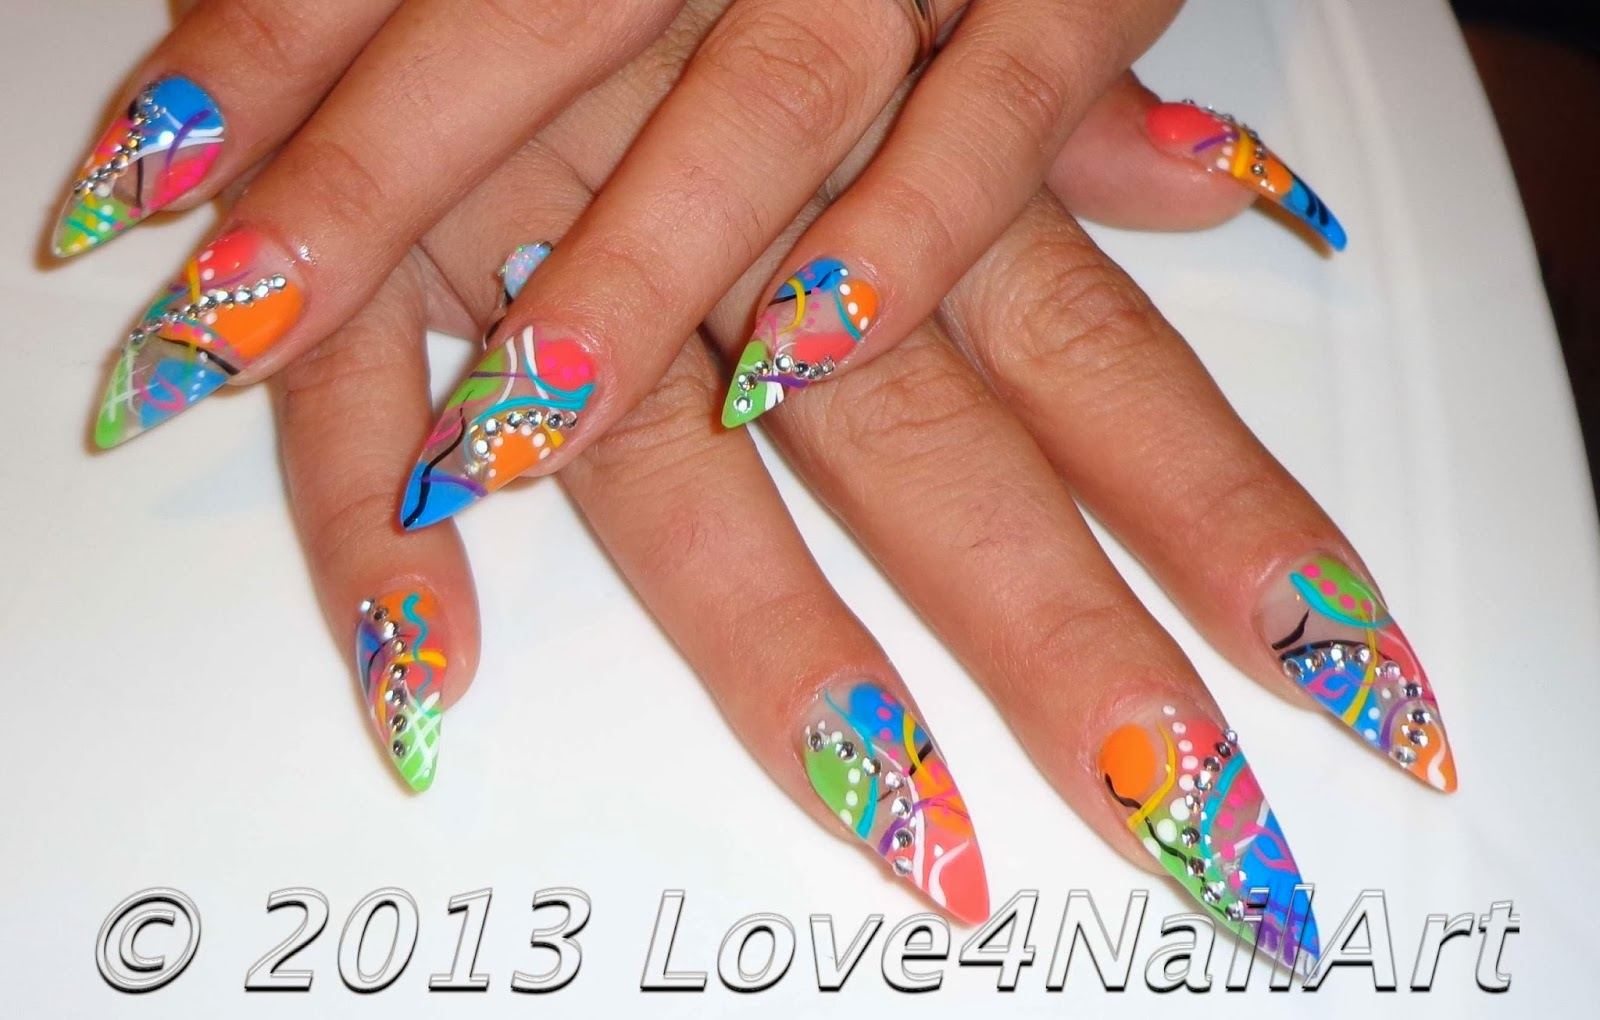 Exotic Nail Art Designs Photos Best Nail 2017 Super Long Acrylic in Abstract Nail Art Design 2015